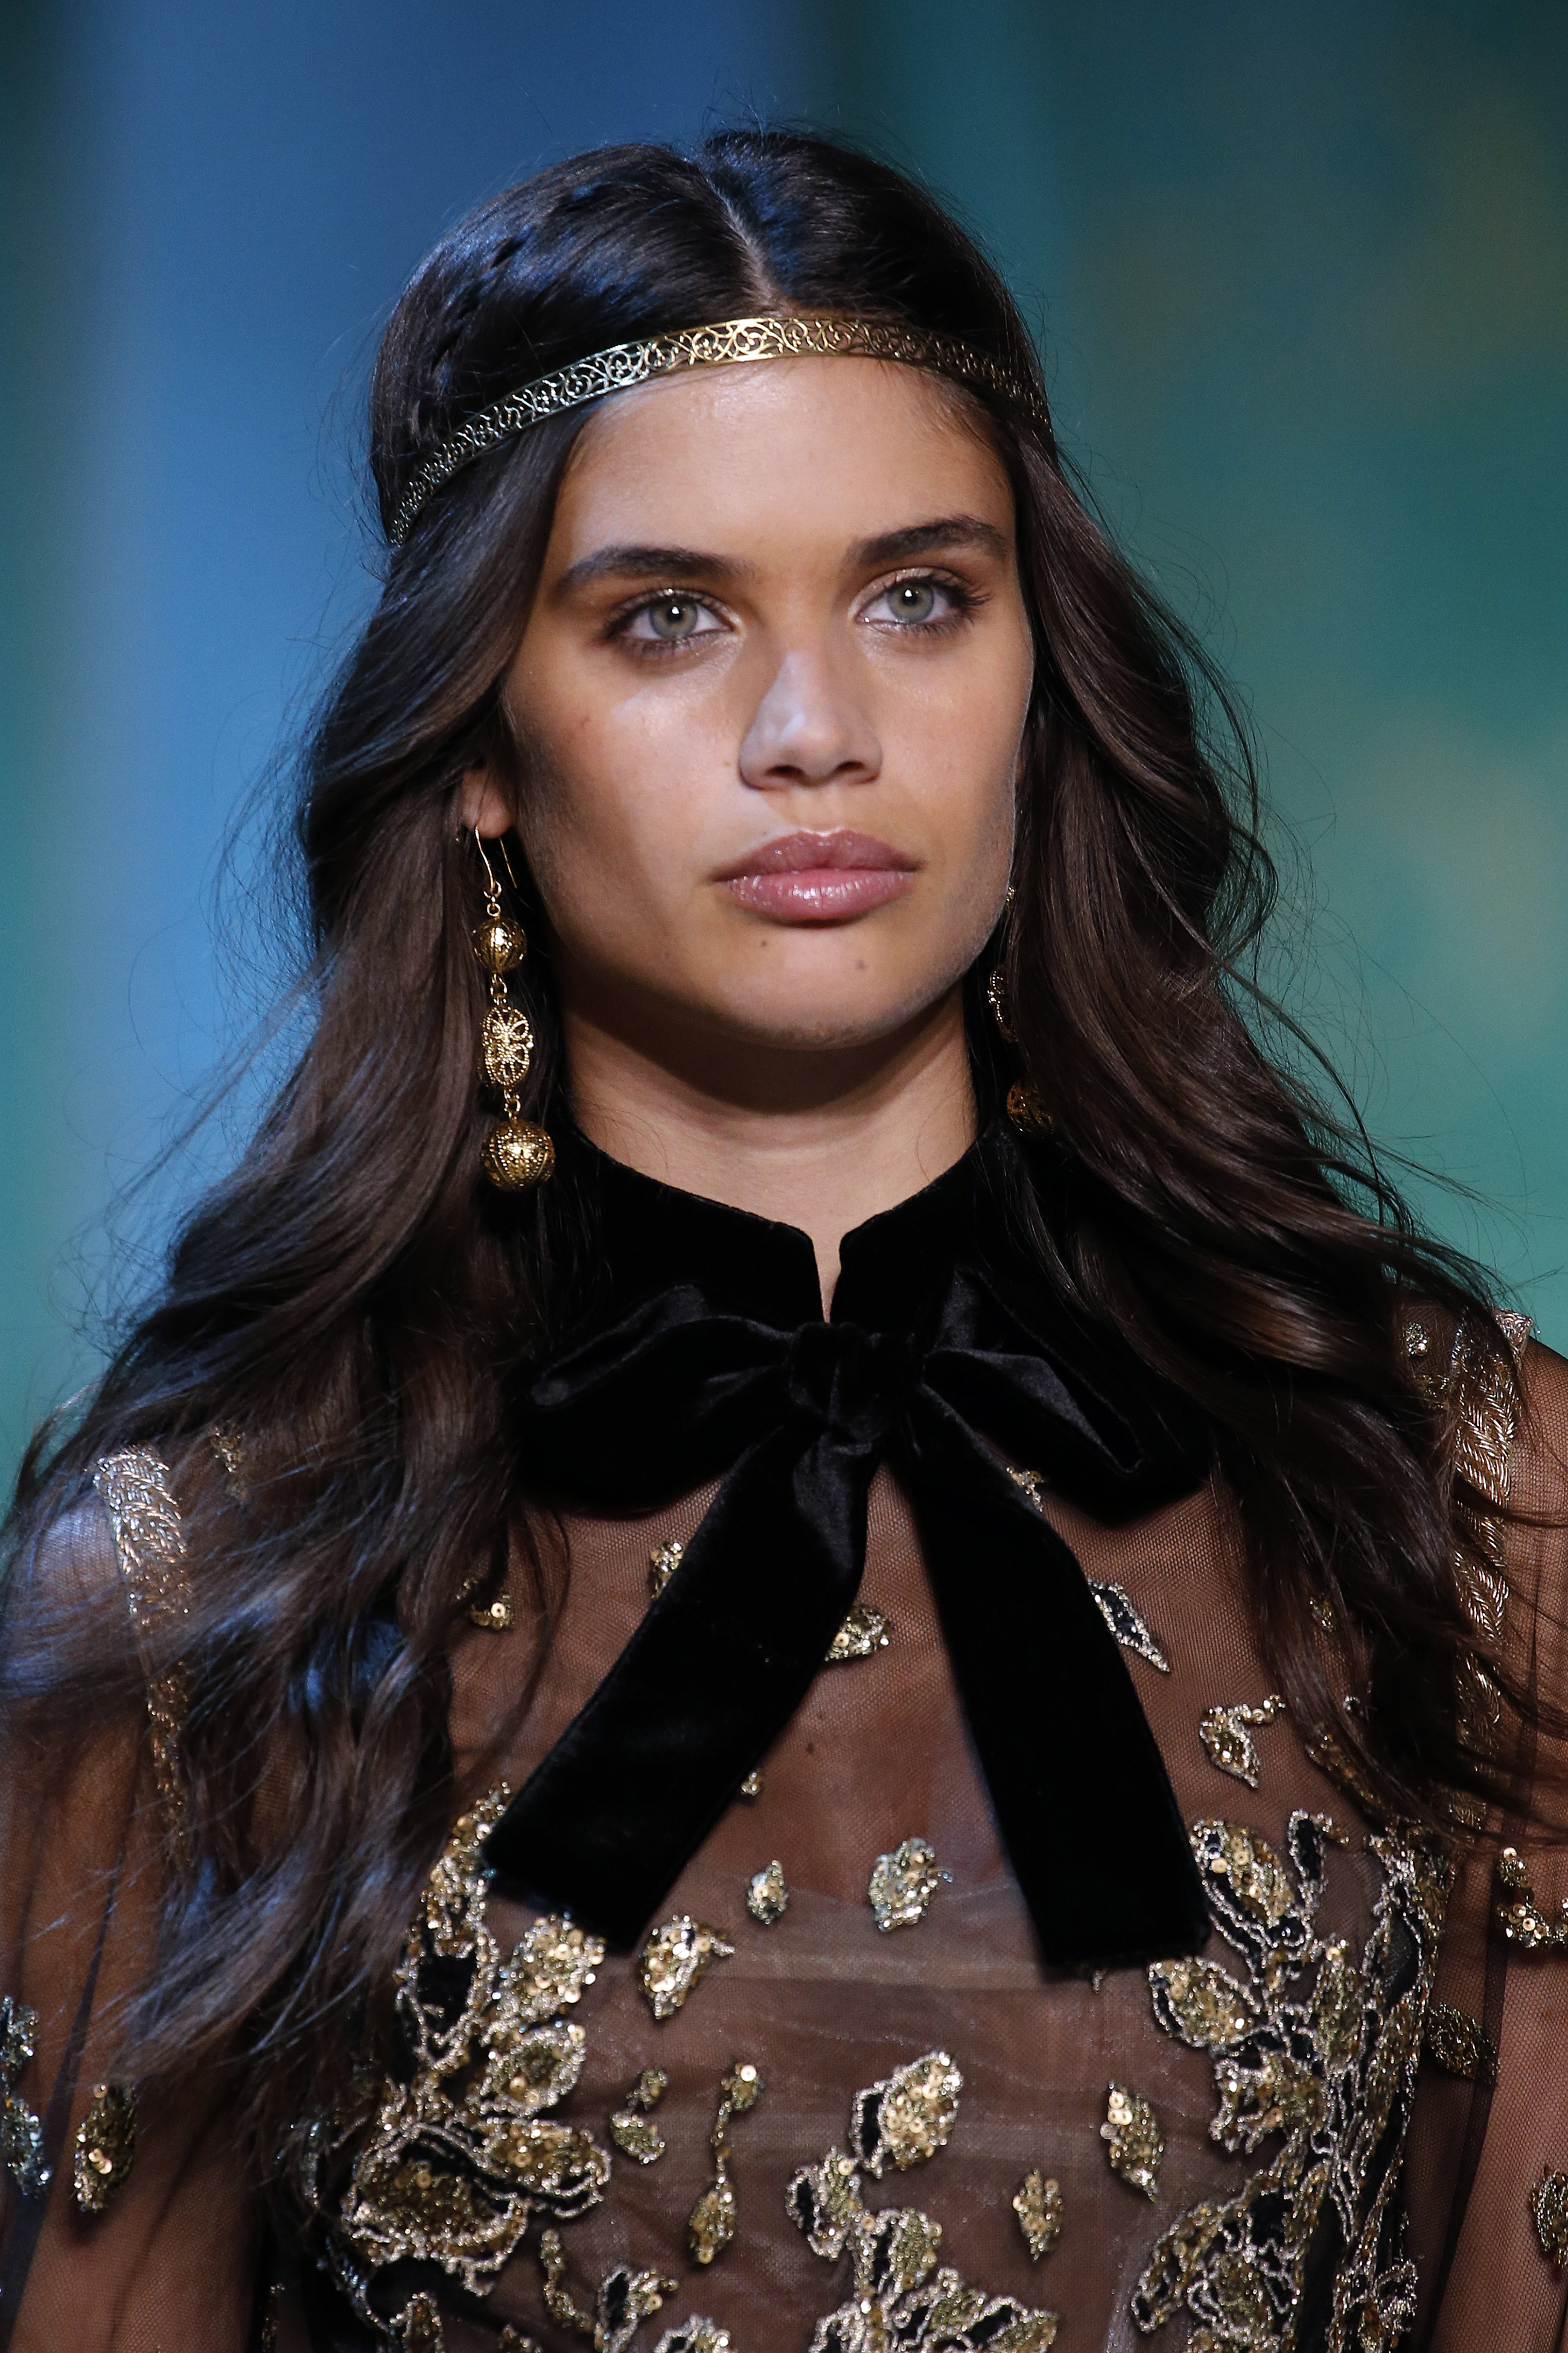 """<p>Paris Fashion Week 2017 has been a whirlwind of jaw-dropping, show-stopping beauty looks - each one every bit as mesmerising as the made-to-measure garments.<br /> <br /> For the past few seasons beauty looks have been pared back with the fashion doing ALL of the talking. But 2017 has seen a dramatic turnabout with makeup and hair that's been flawless- and we couldn't be more excited. For example ...<br /> <br /> Makeup artist Tom Pecheux created a glowing, golden beauty look to match the<em> Games of Thrones</em>-inspired headpieces and soft-waves sported by the models at Ellie Saab. </p> <p>There was golden locks at Maison Margiela, fresh floral wreathes at Rodarte and<a href=""""https://style.nine.com.au/2017/07/05/09/13/style_alexandre-vauthier-haute-couture-show"""" target=""""_blank"""" draggable=""""false""""> smokey disco eyes at Alexandre Vauthier.</a></p> <p>In fact, there were so many amazing looks we simply cannot choose the one we love best. So instead, we're bringing them all.<br /> <br /> Click through the very best hair and makeup moments from the Fall 2017 Haute Couture shows.</p>"""